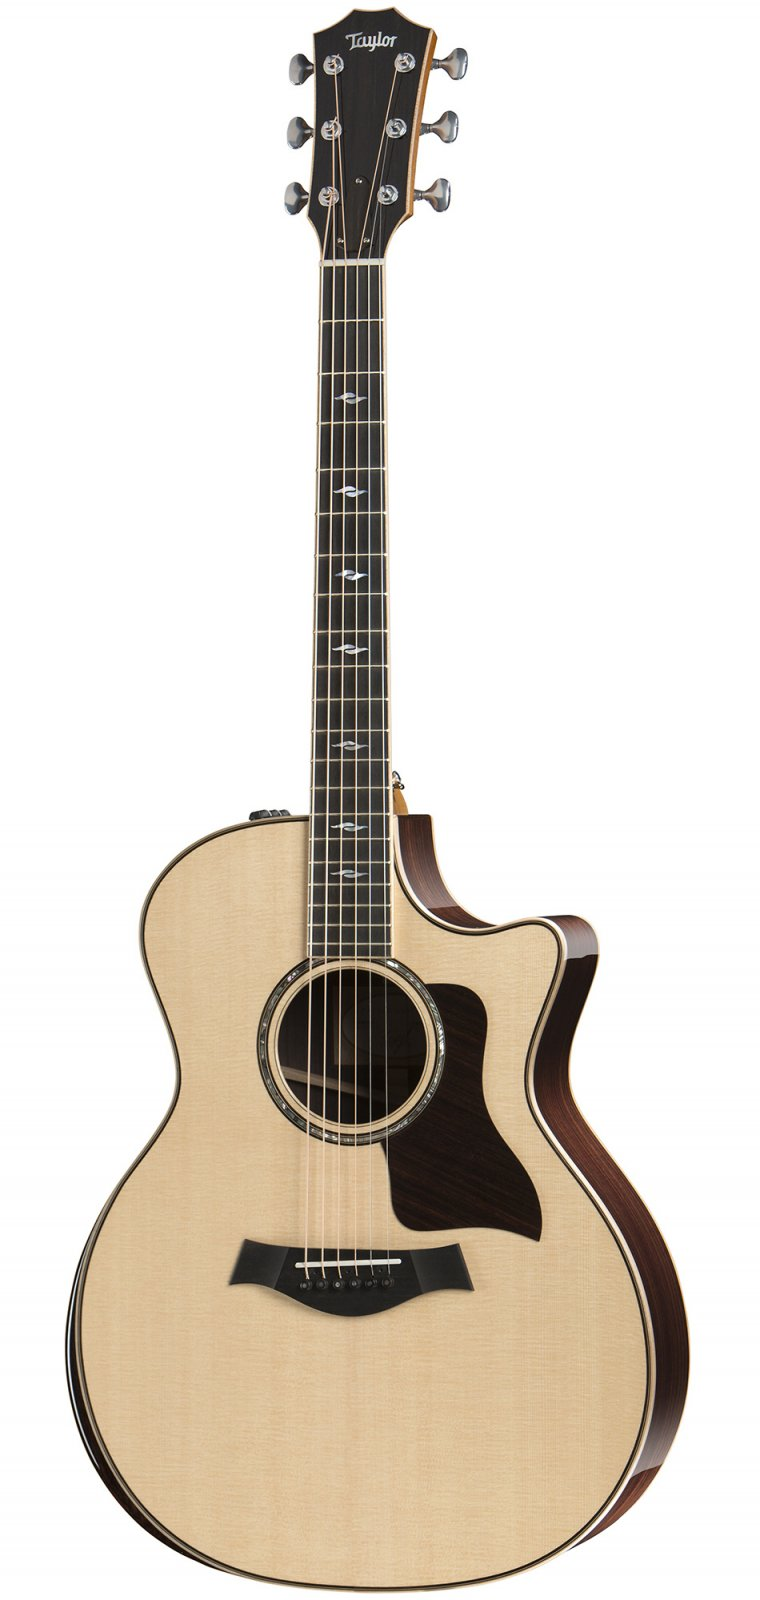 Taylor 814ce DLX V-Class Bracing with Hardshell Case